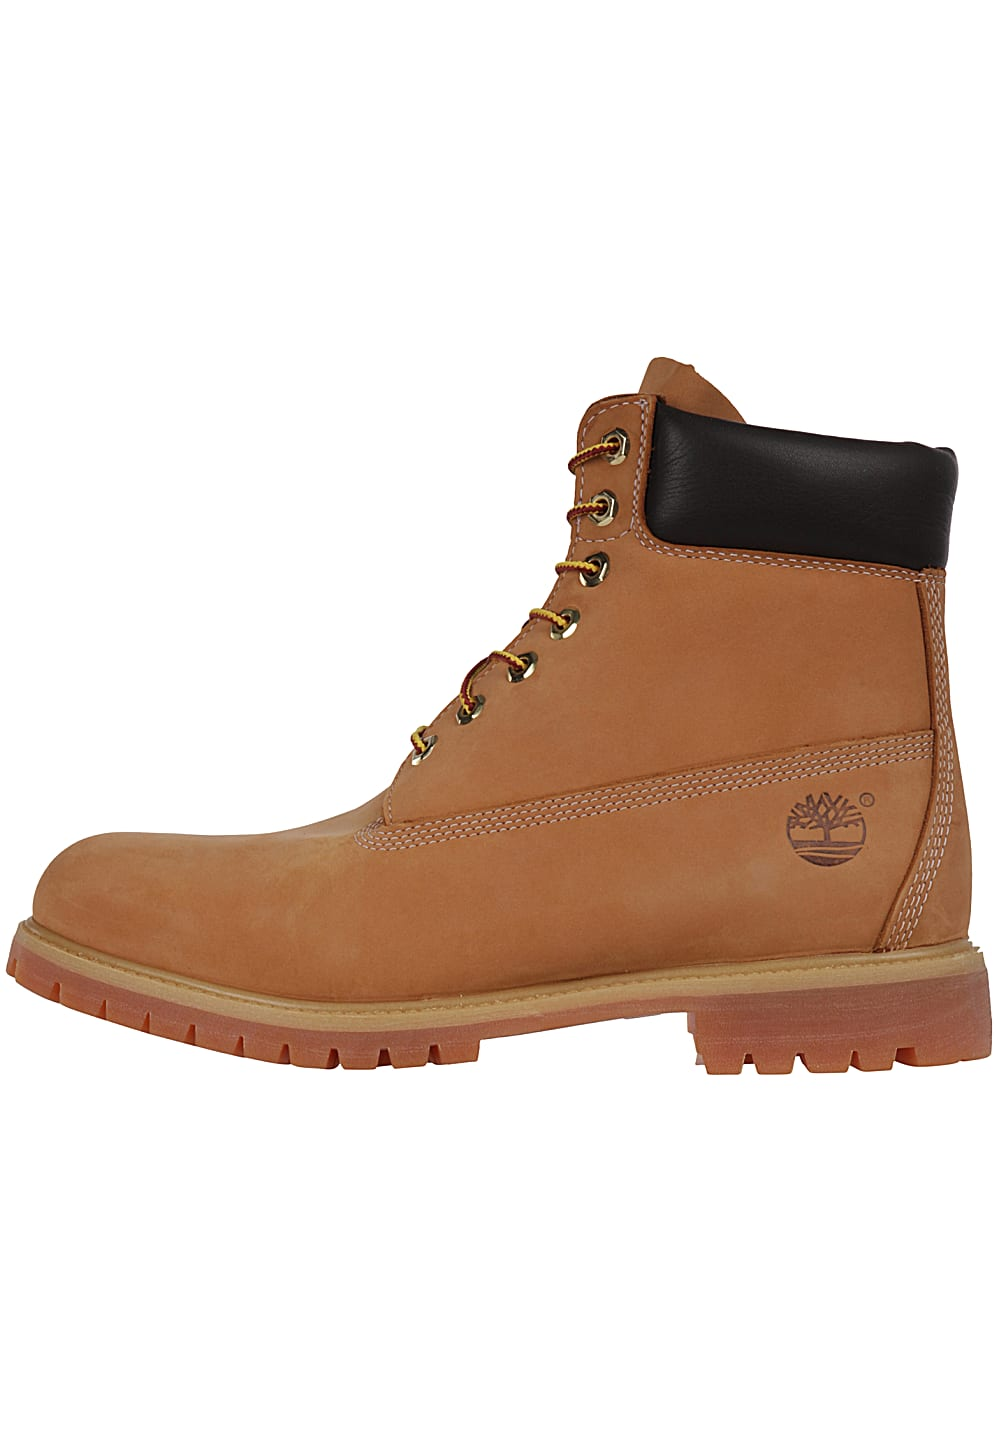 timberland 6 inch homme neige